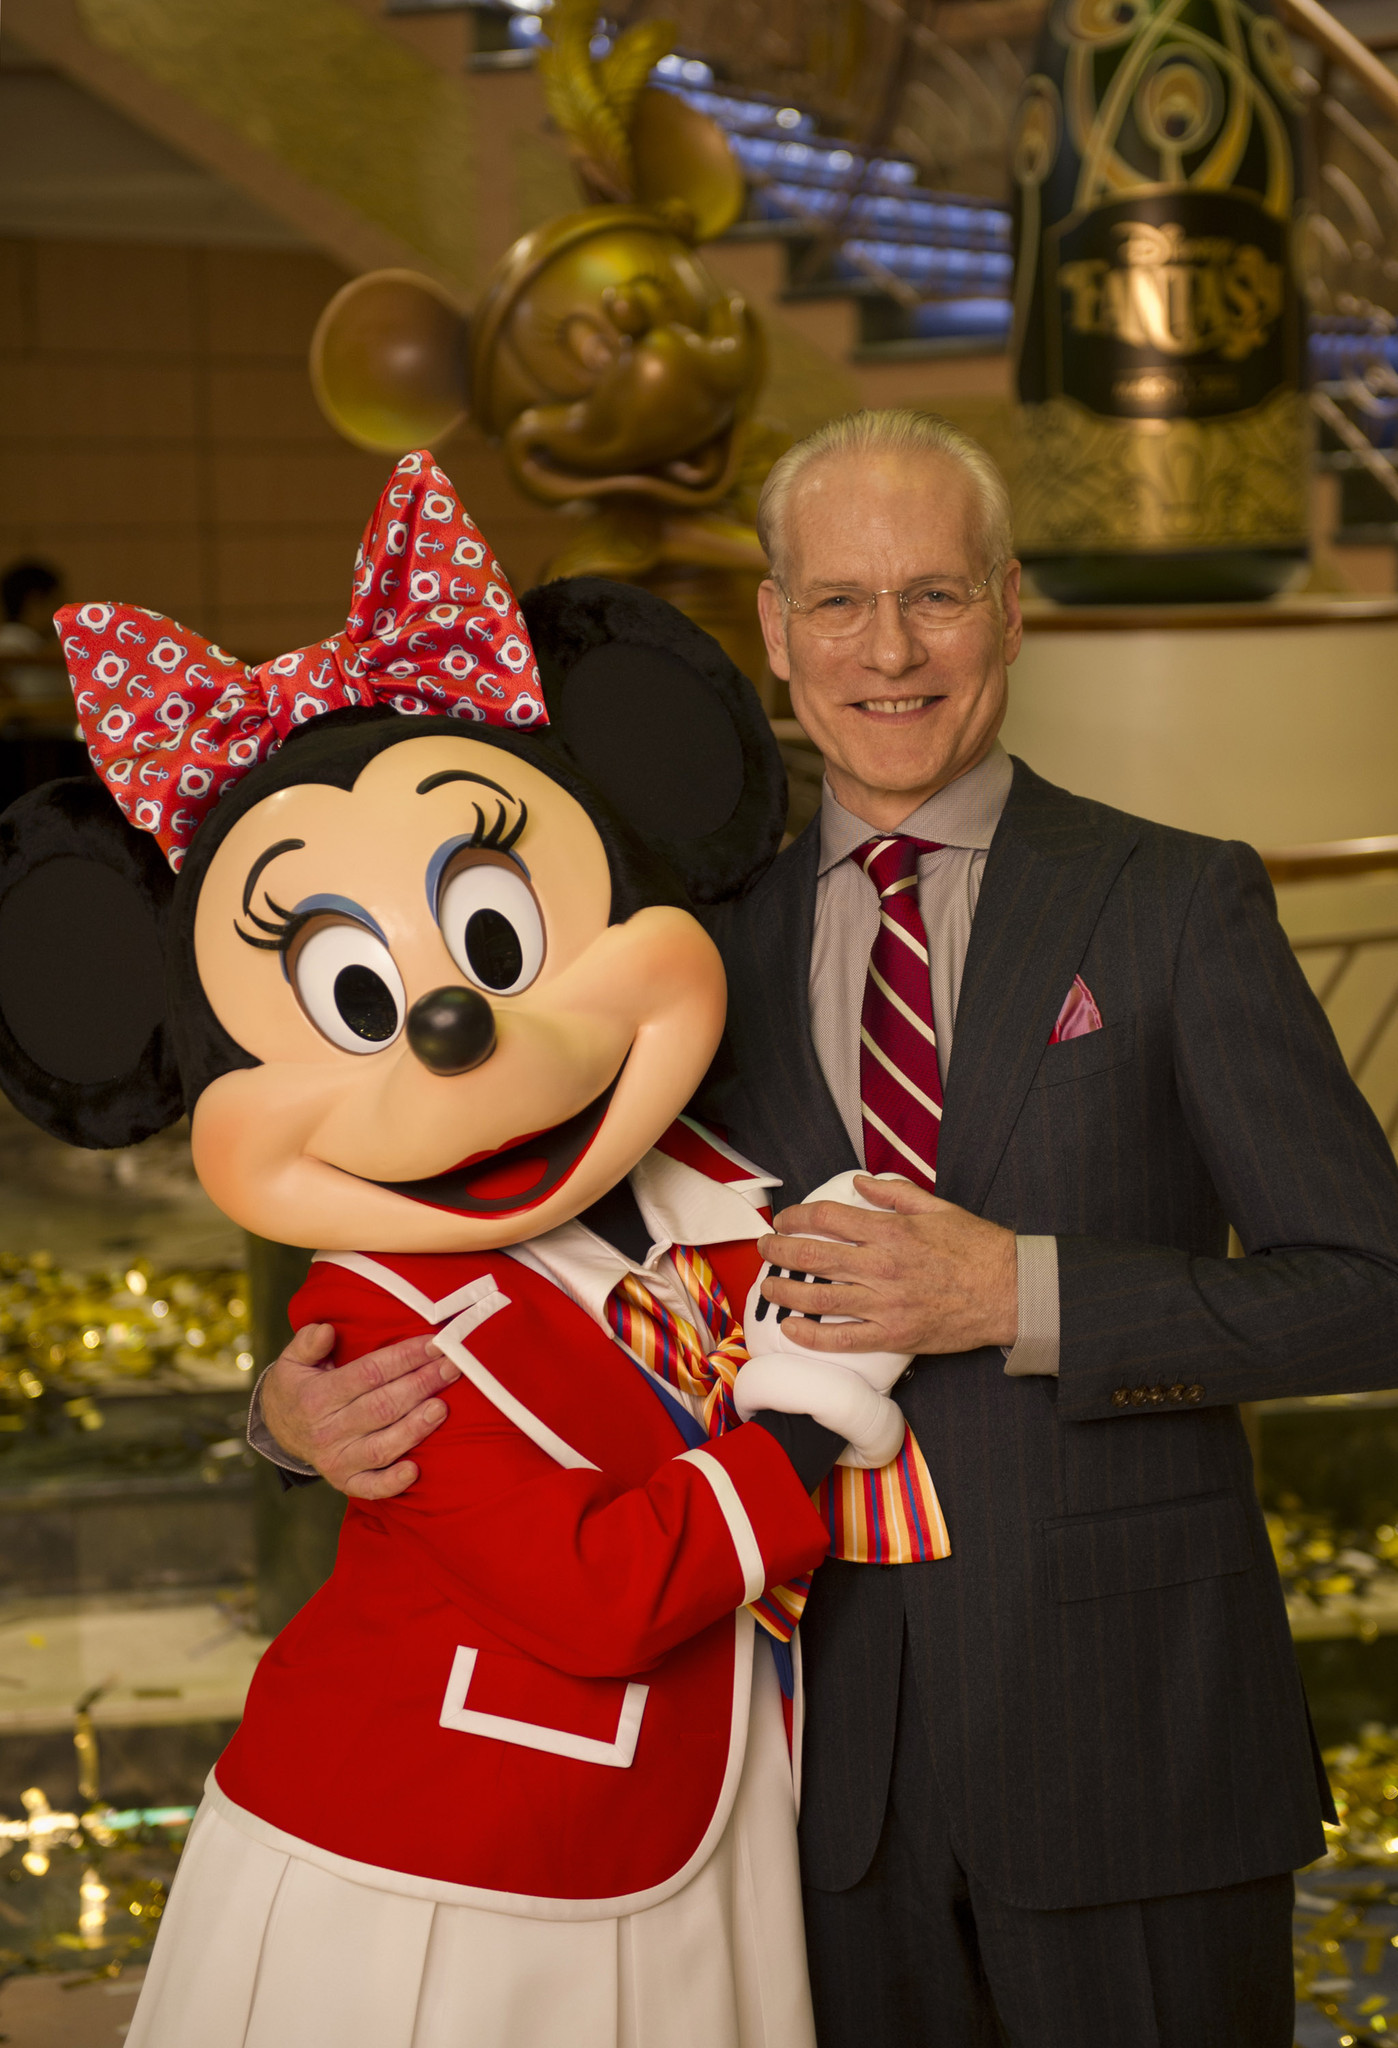 Florida Cruise Guide: Disney Fantasy pictures - Disney Fantasy christening -- Tim Gunn